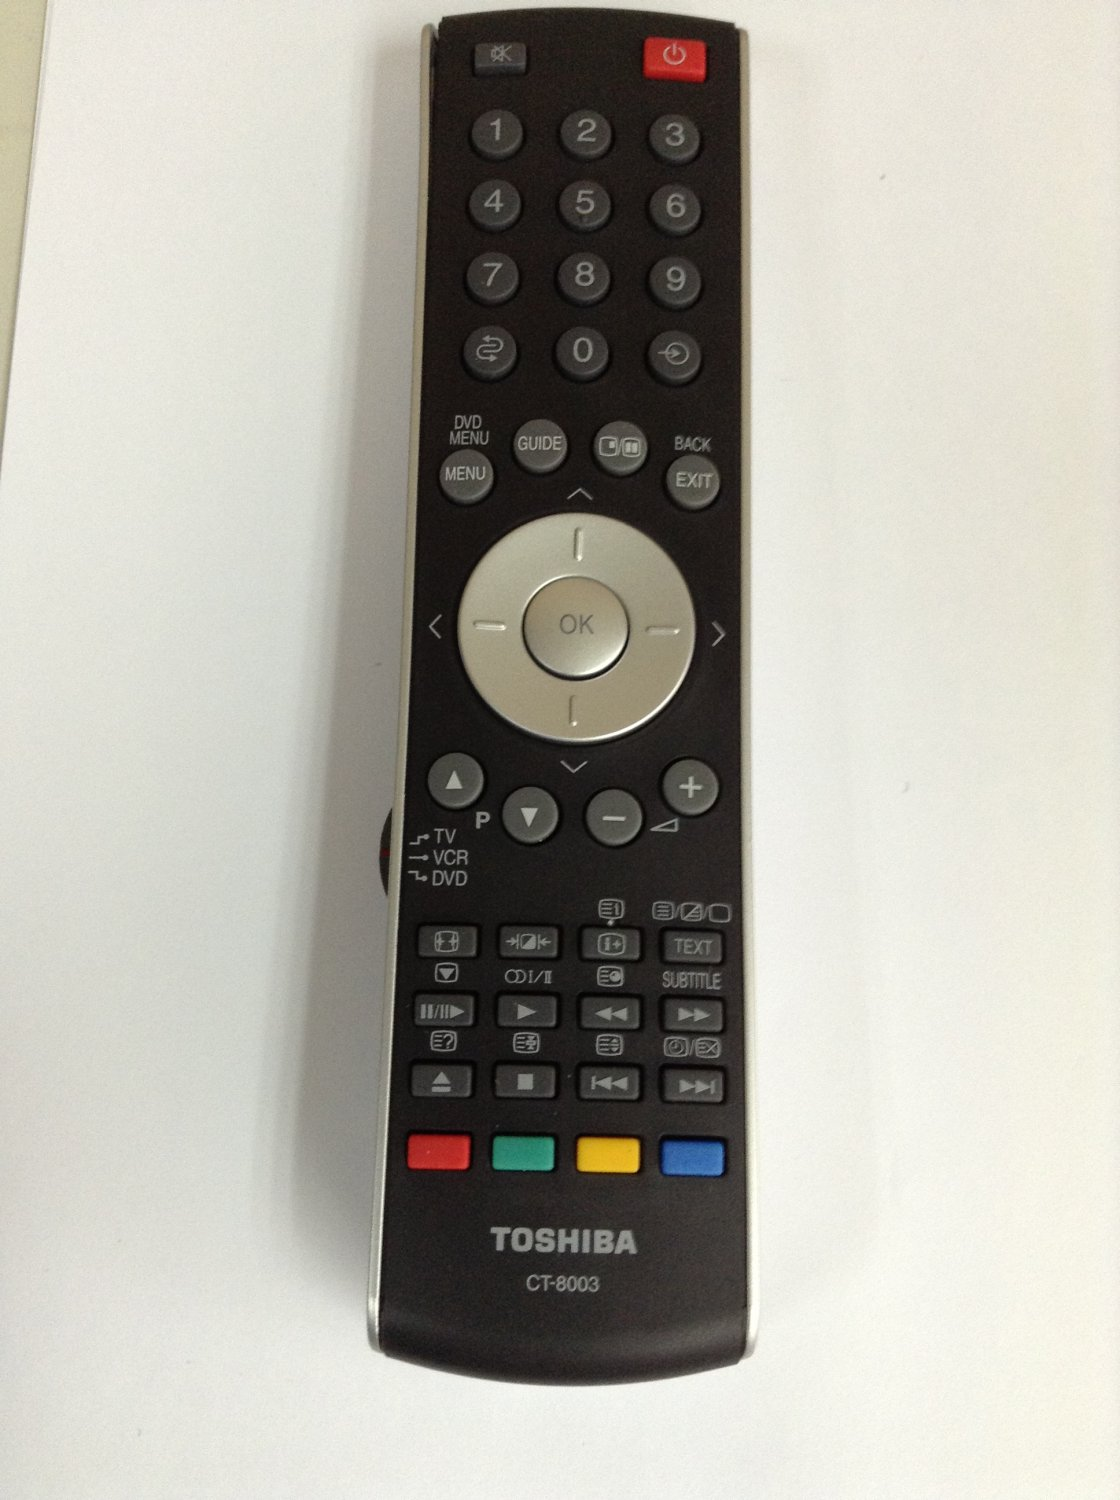 REMOTE CONTROL FOR TOSHIBA TV 46HM95 46HMX85 46WM48 46WM48P P42LHA P42LSA P47LHA